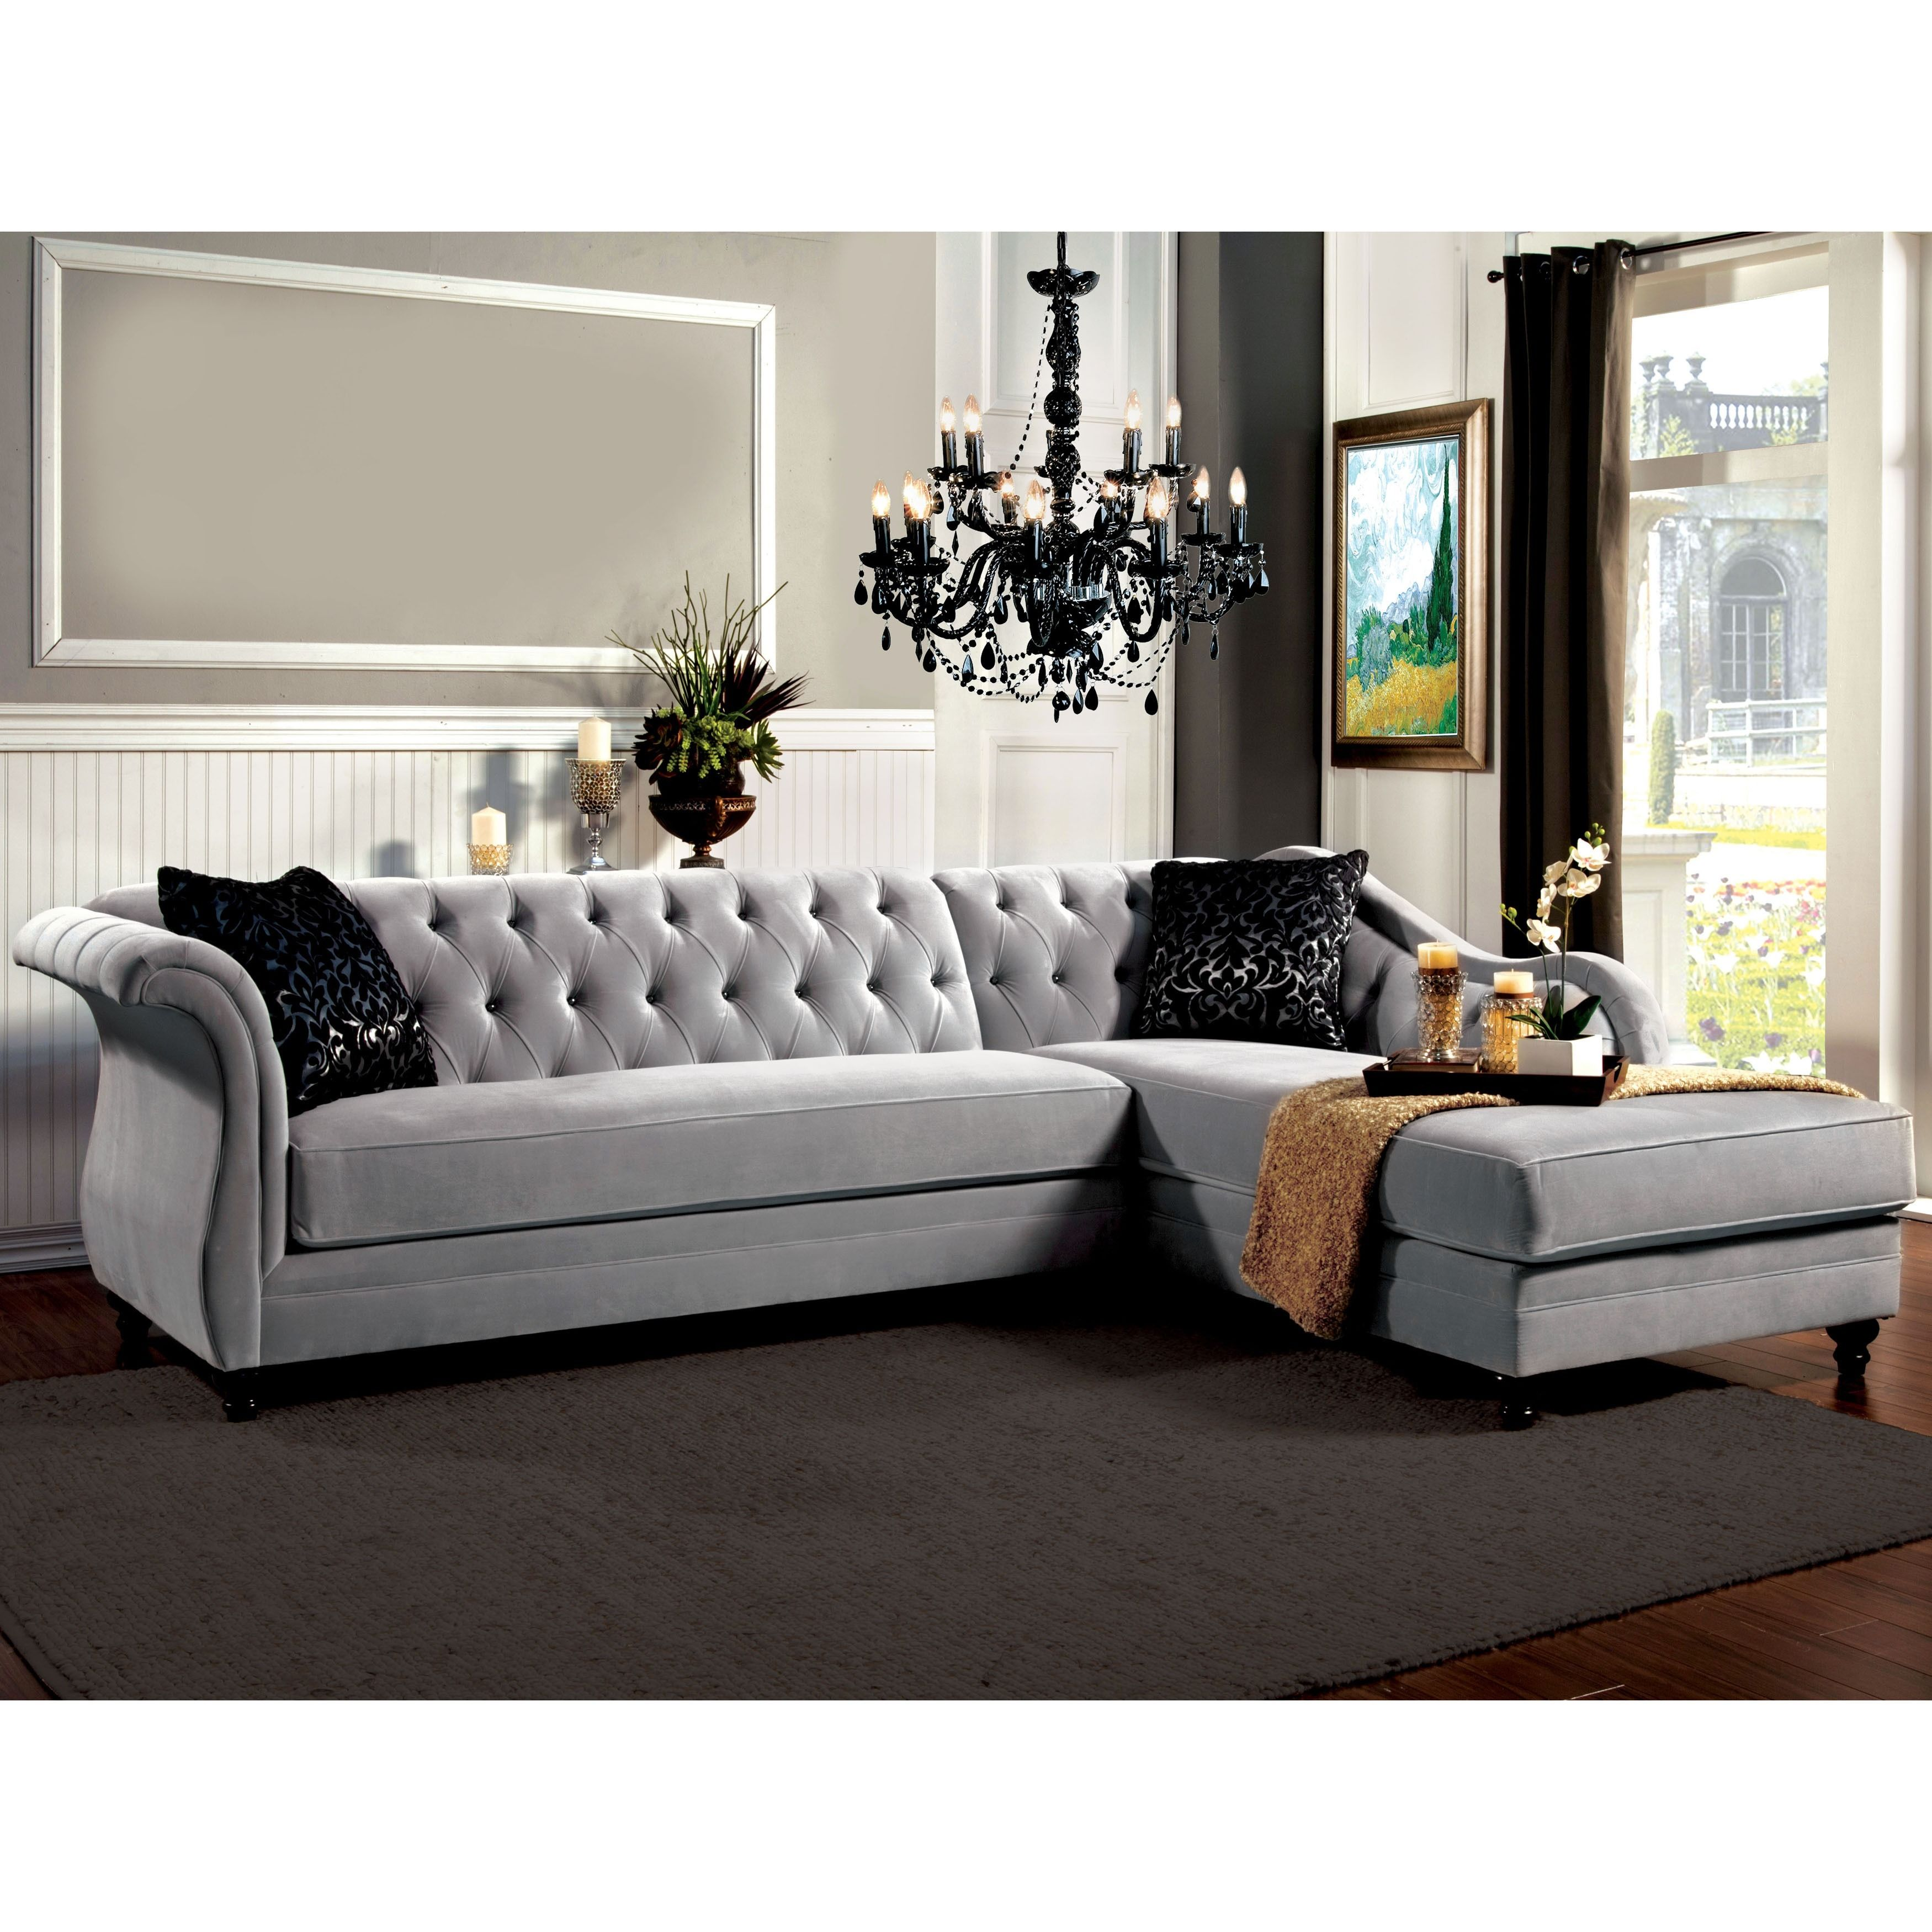 This sophisticated sectional offers effortless elegance while providing smooth upholstery for hours of comfort the silky colors pair beautifully with any